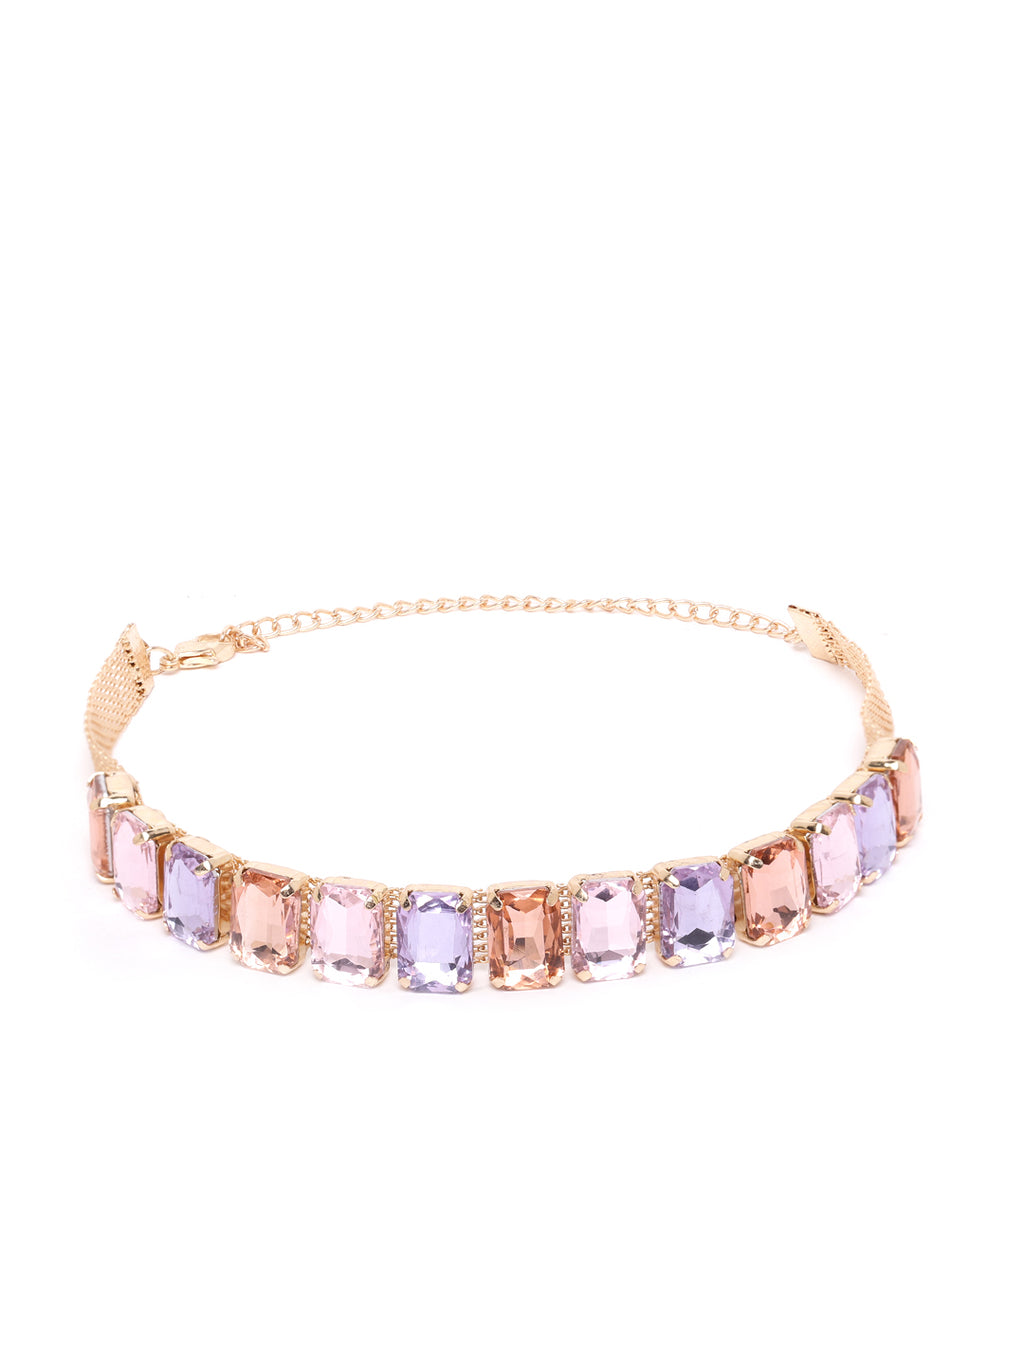 Blueberry gold plated stone embellished choker necklace